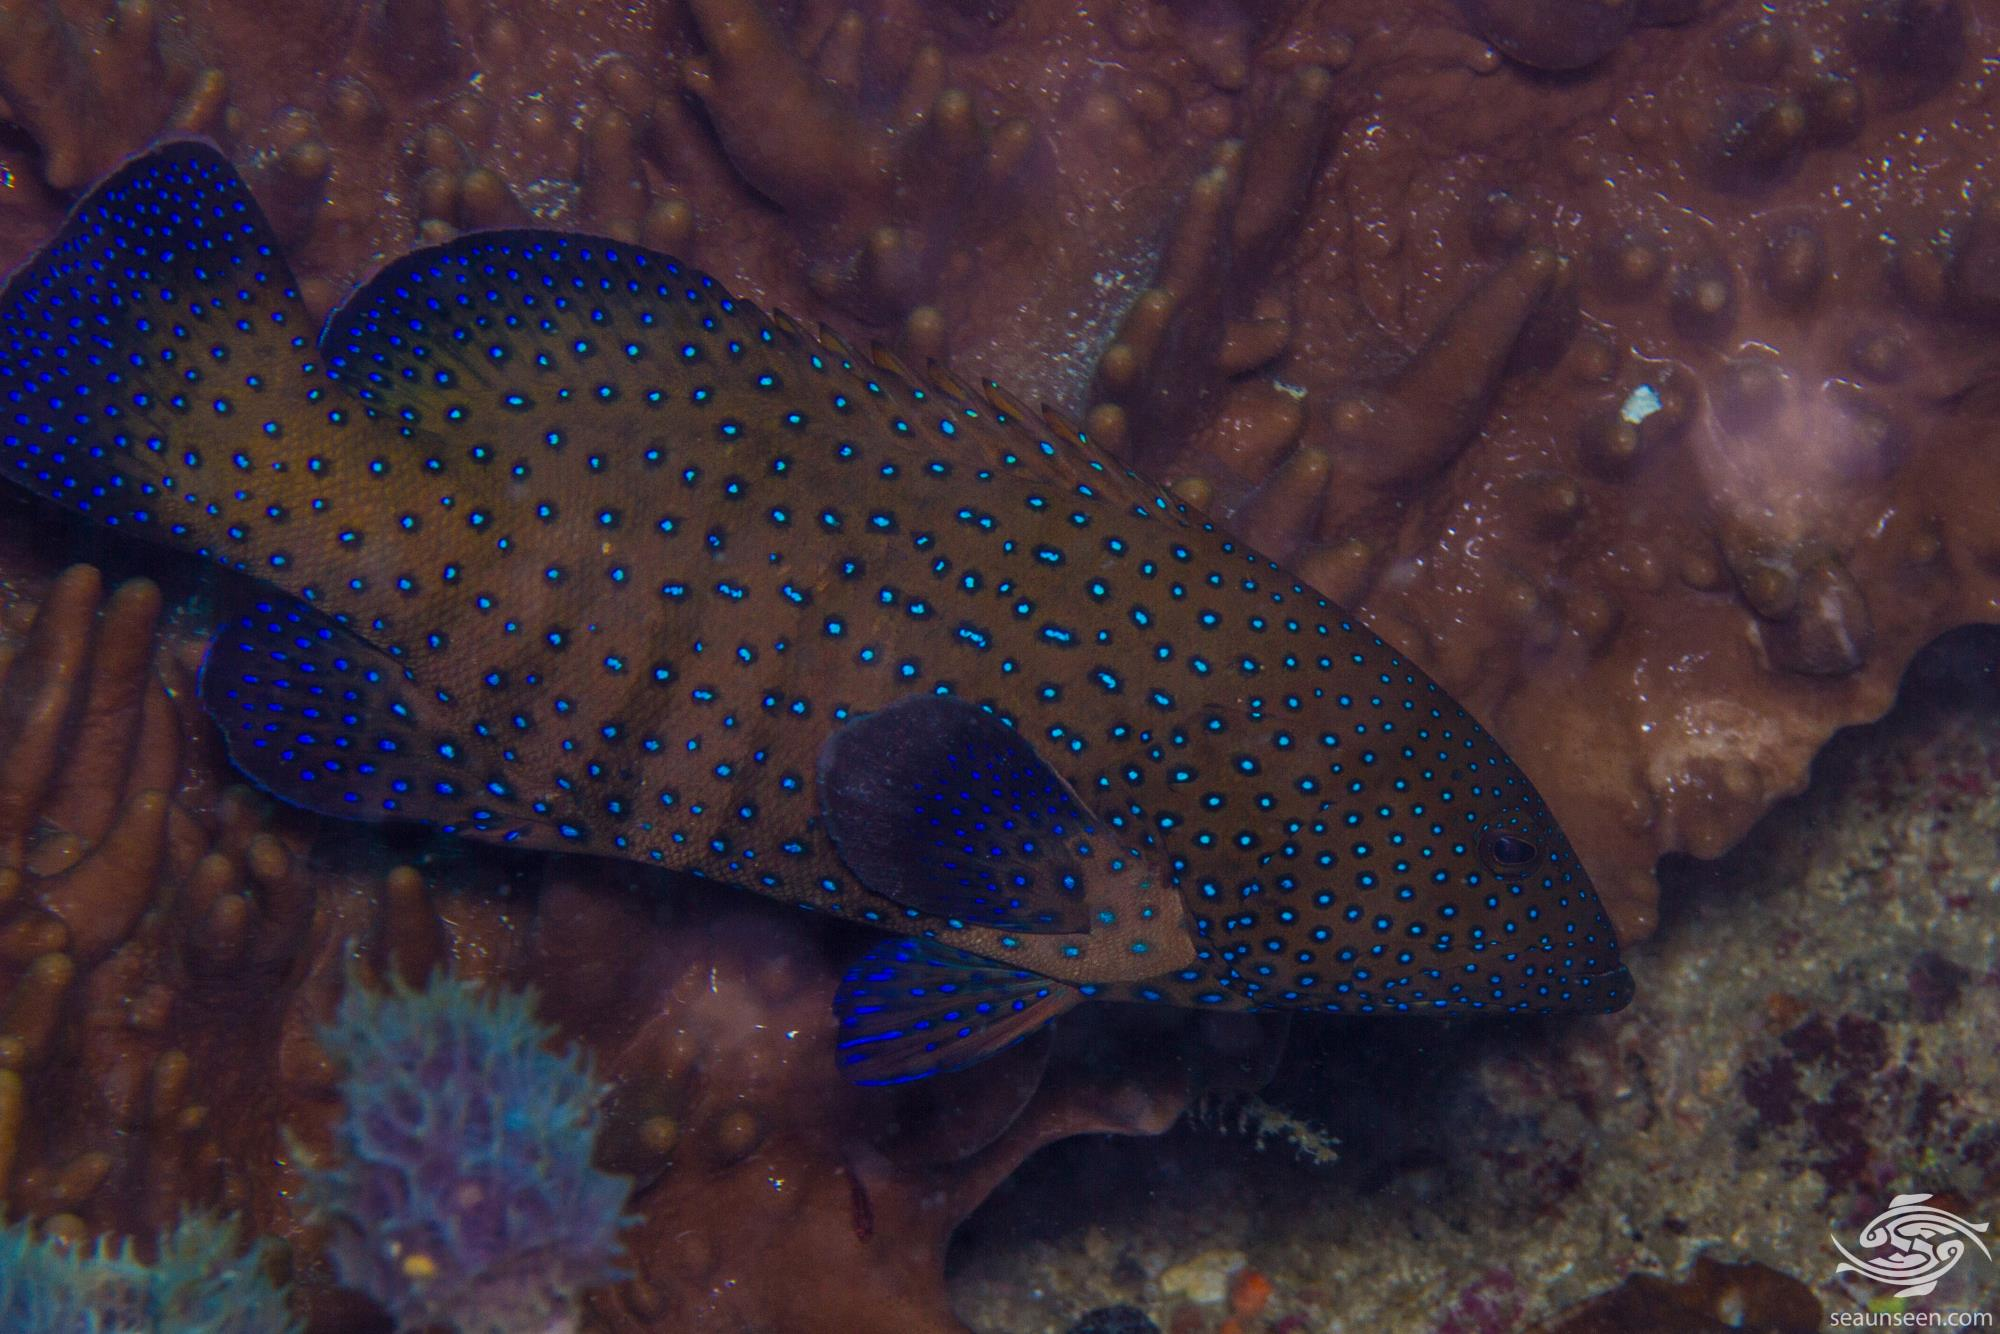 Peacock grouper (Cephalopholis argus) is also known as the Peacock Hind, Peacock Rockcod, the Bluespotted Grouper and the Celestial Grouper